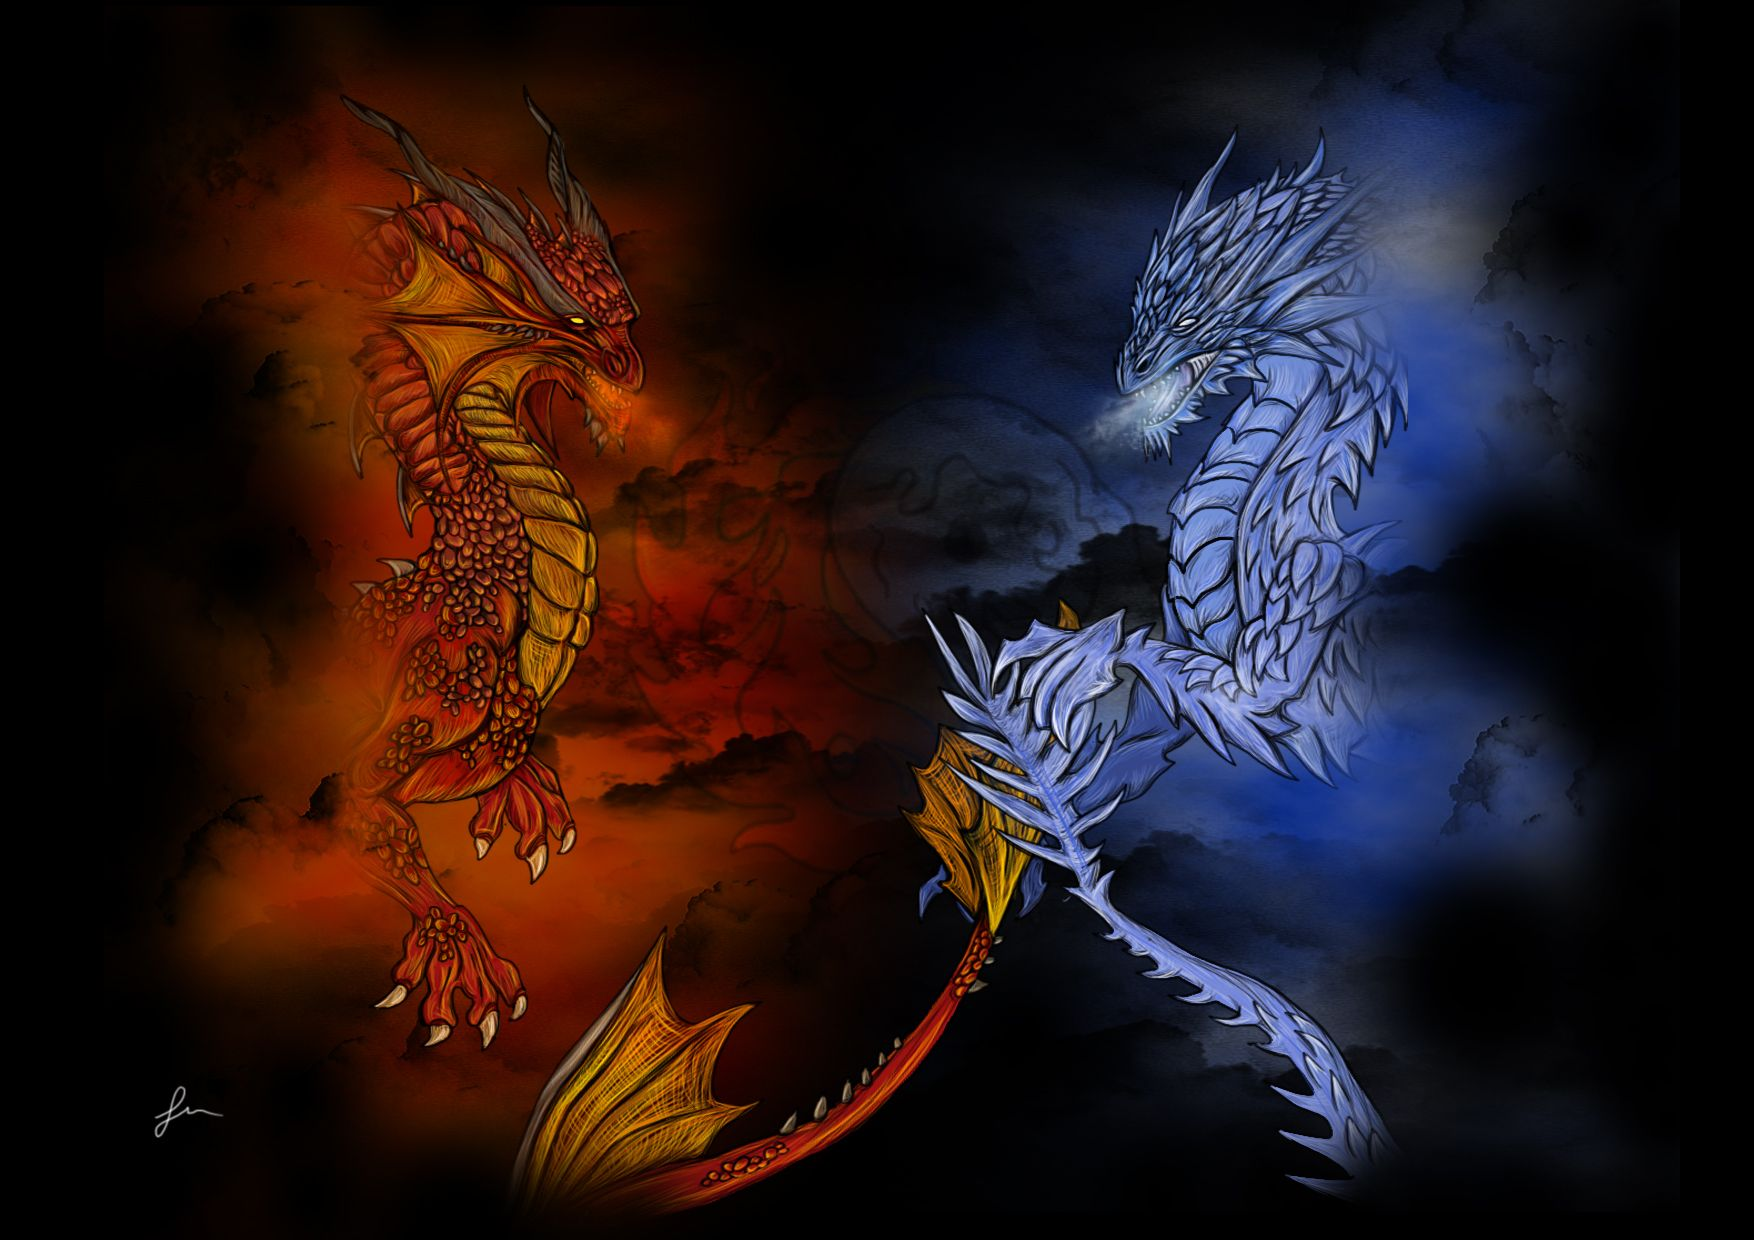 giant giant fire dragon vs ice dragon - photo #25